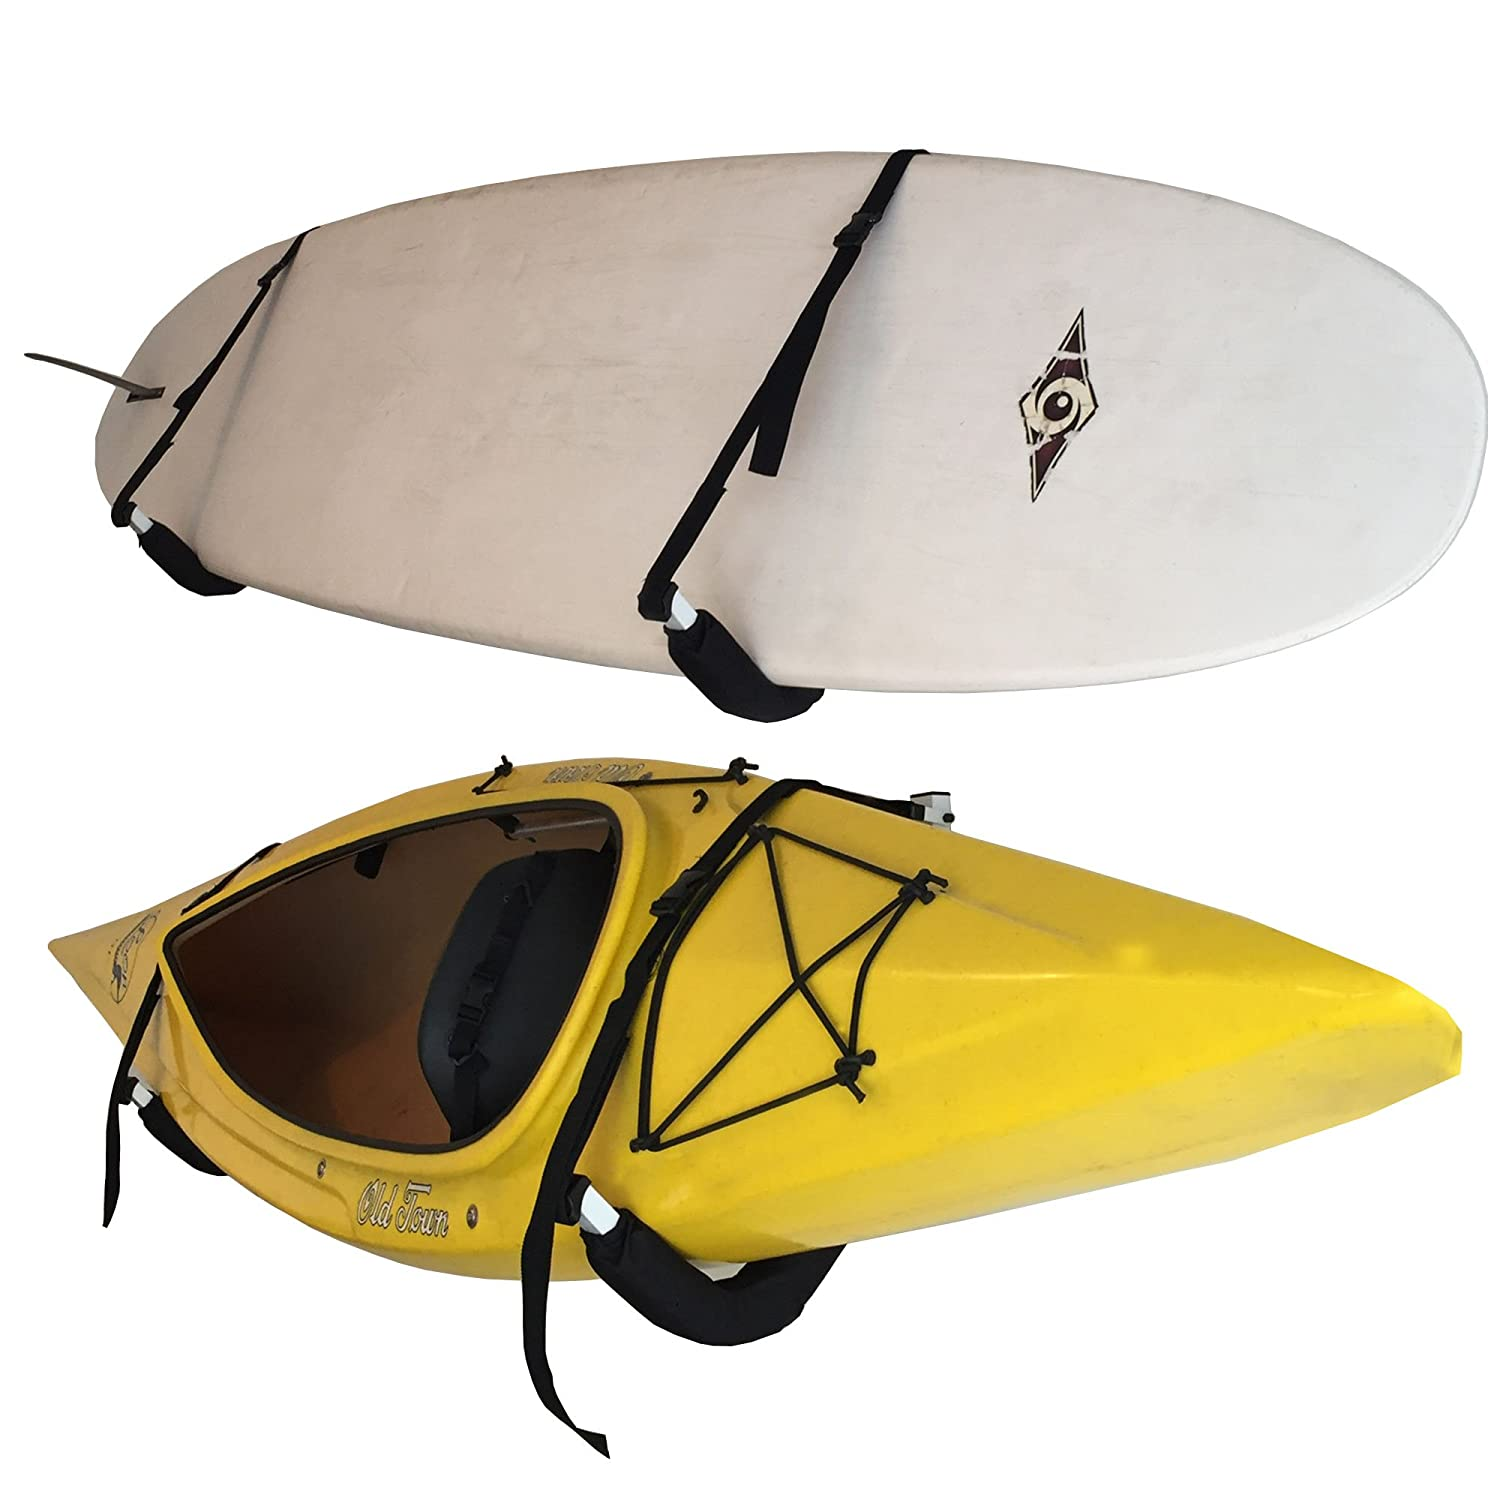 save systems a sparehand sup tier wall and surfboard mount p rack